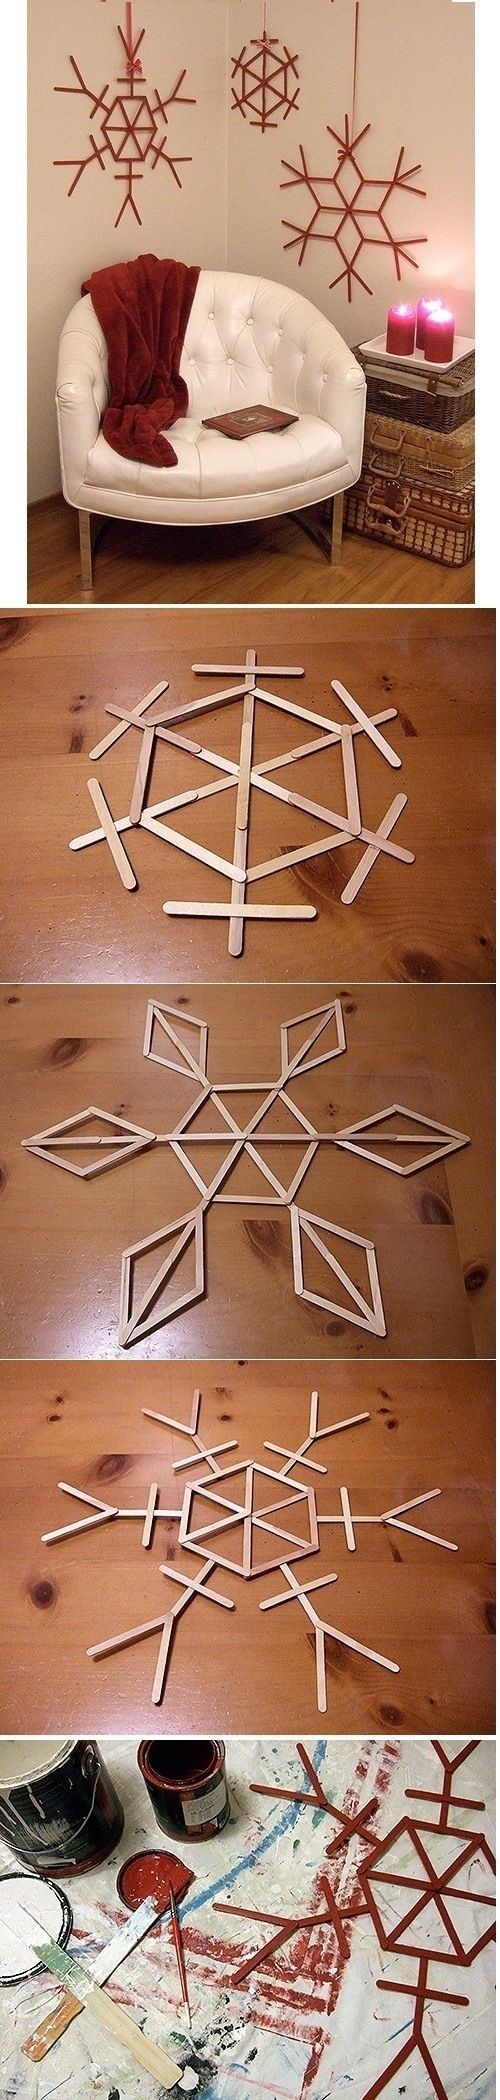 Popsicle snowflakes.  It would be cute to hang them from the ceiling around the…